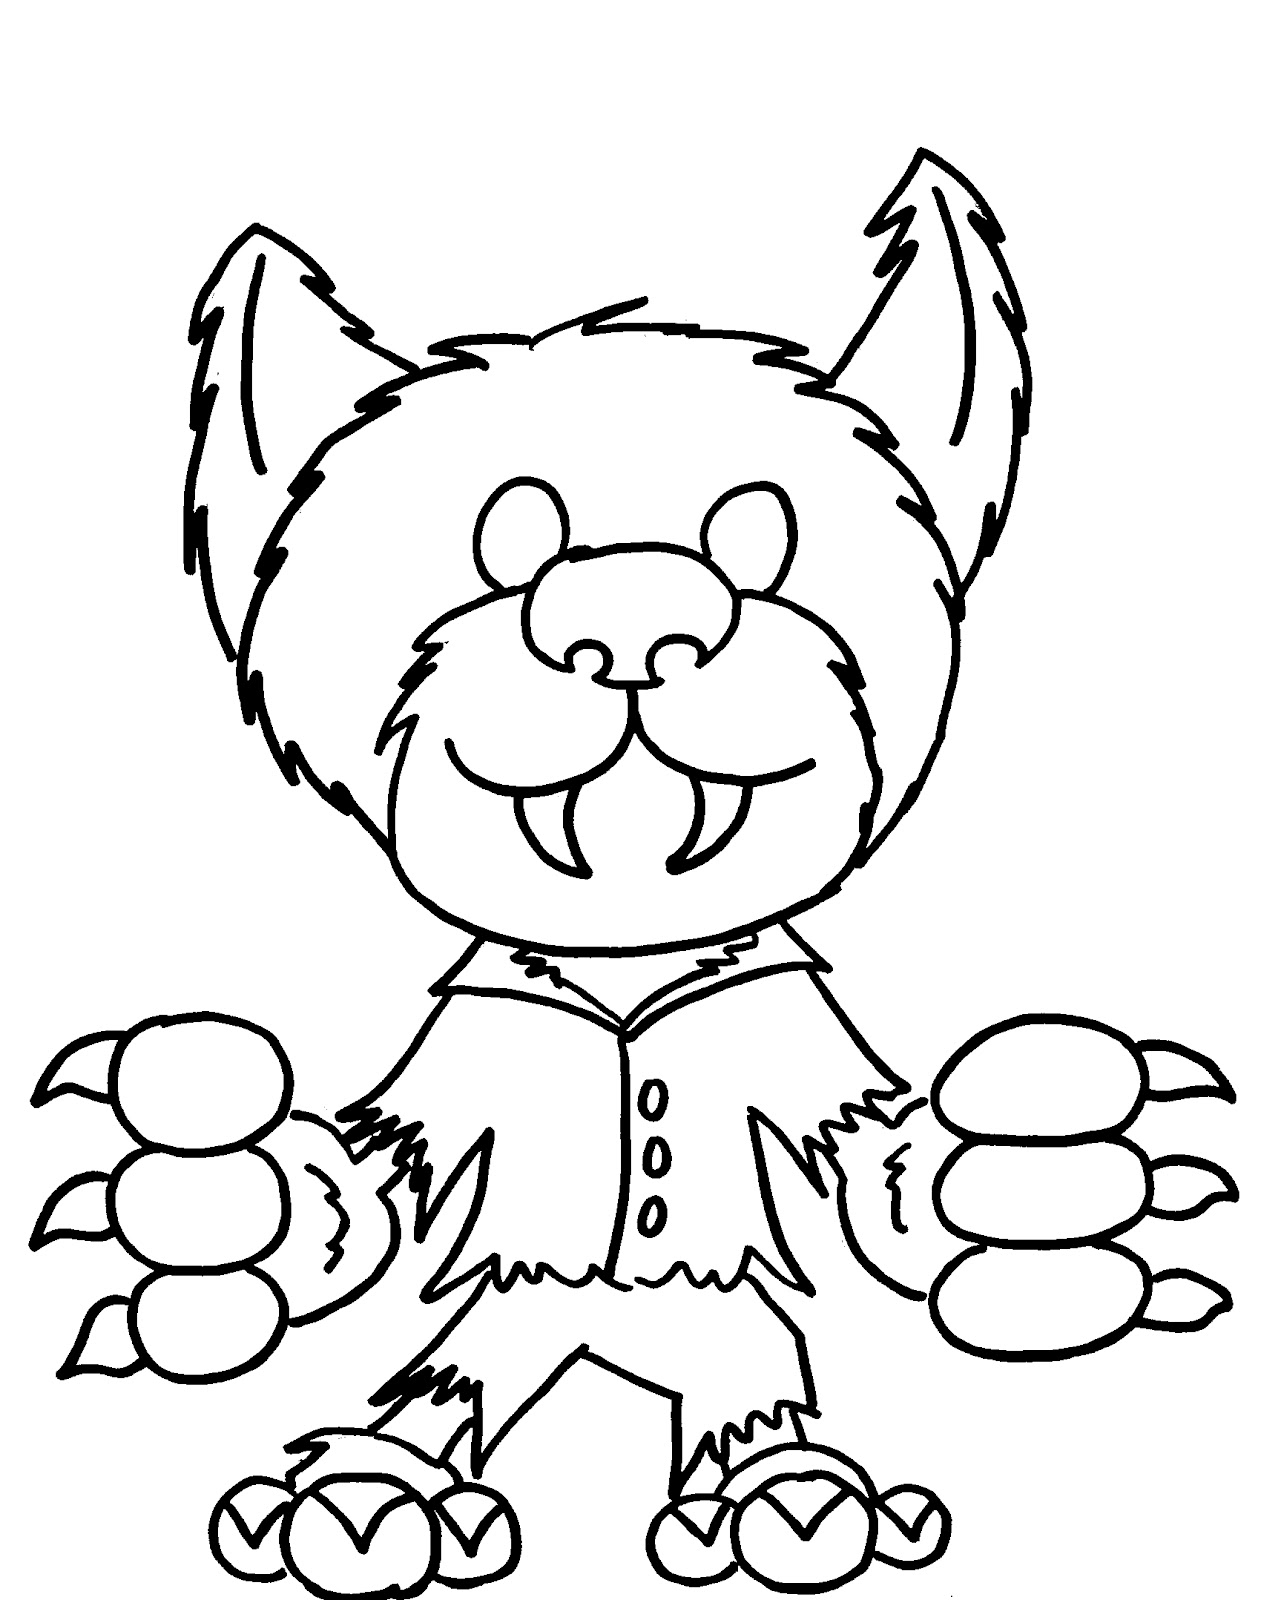 coloring sheets for halloween halloween coloring pages june 2012 halloween coloring for sheets